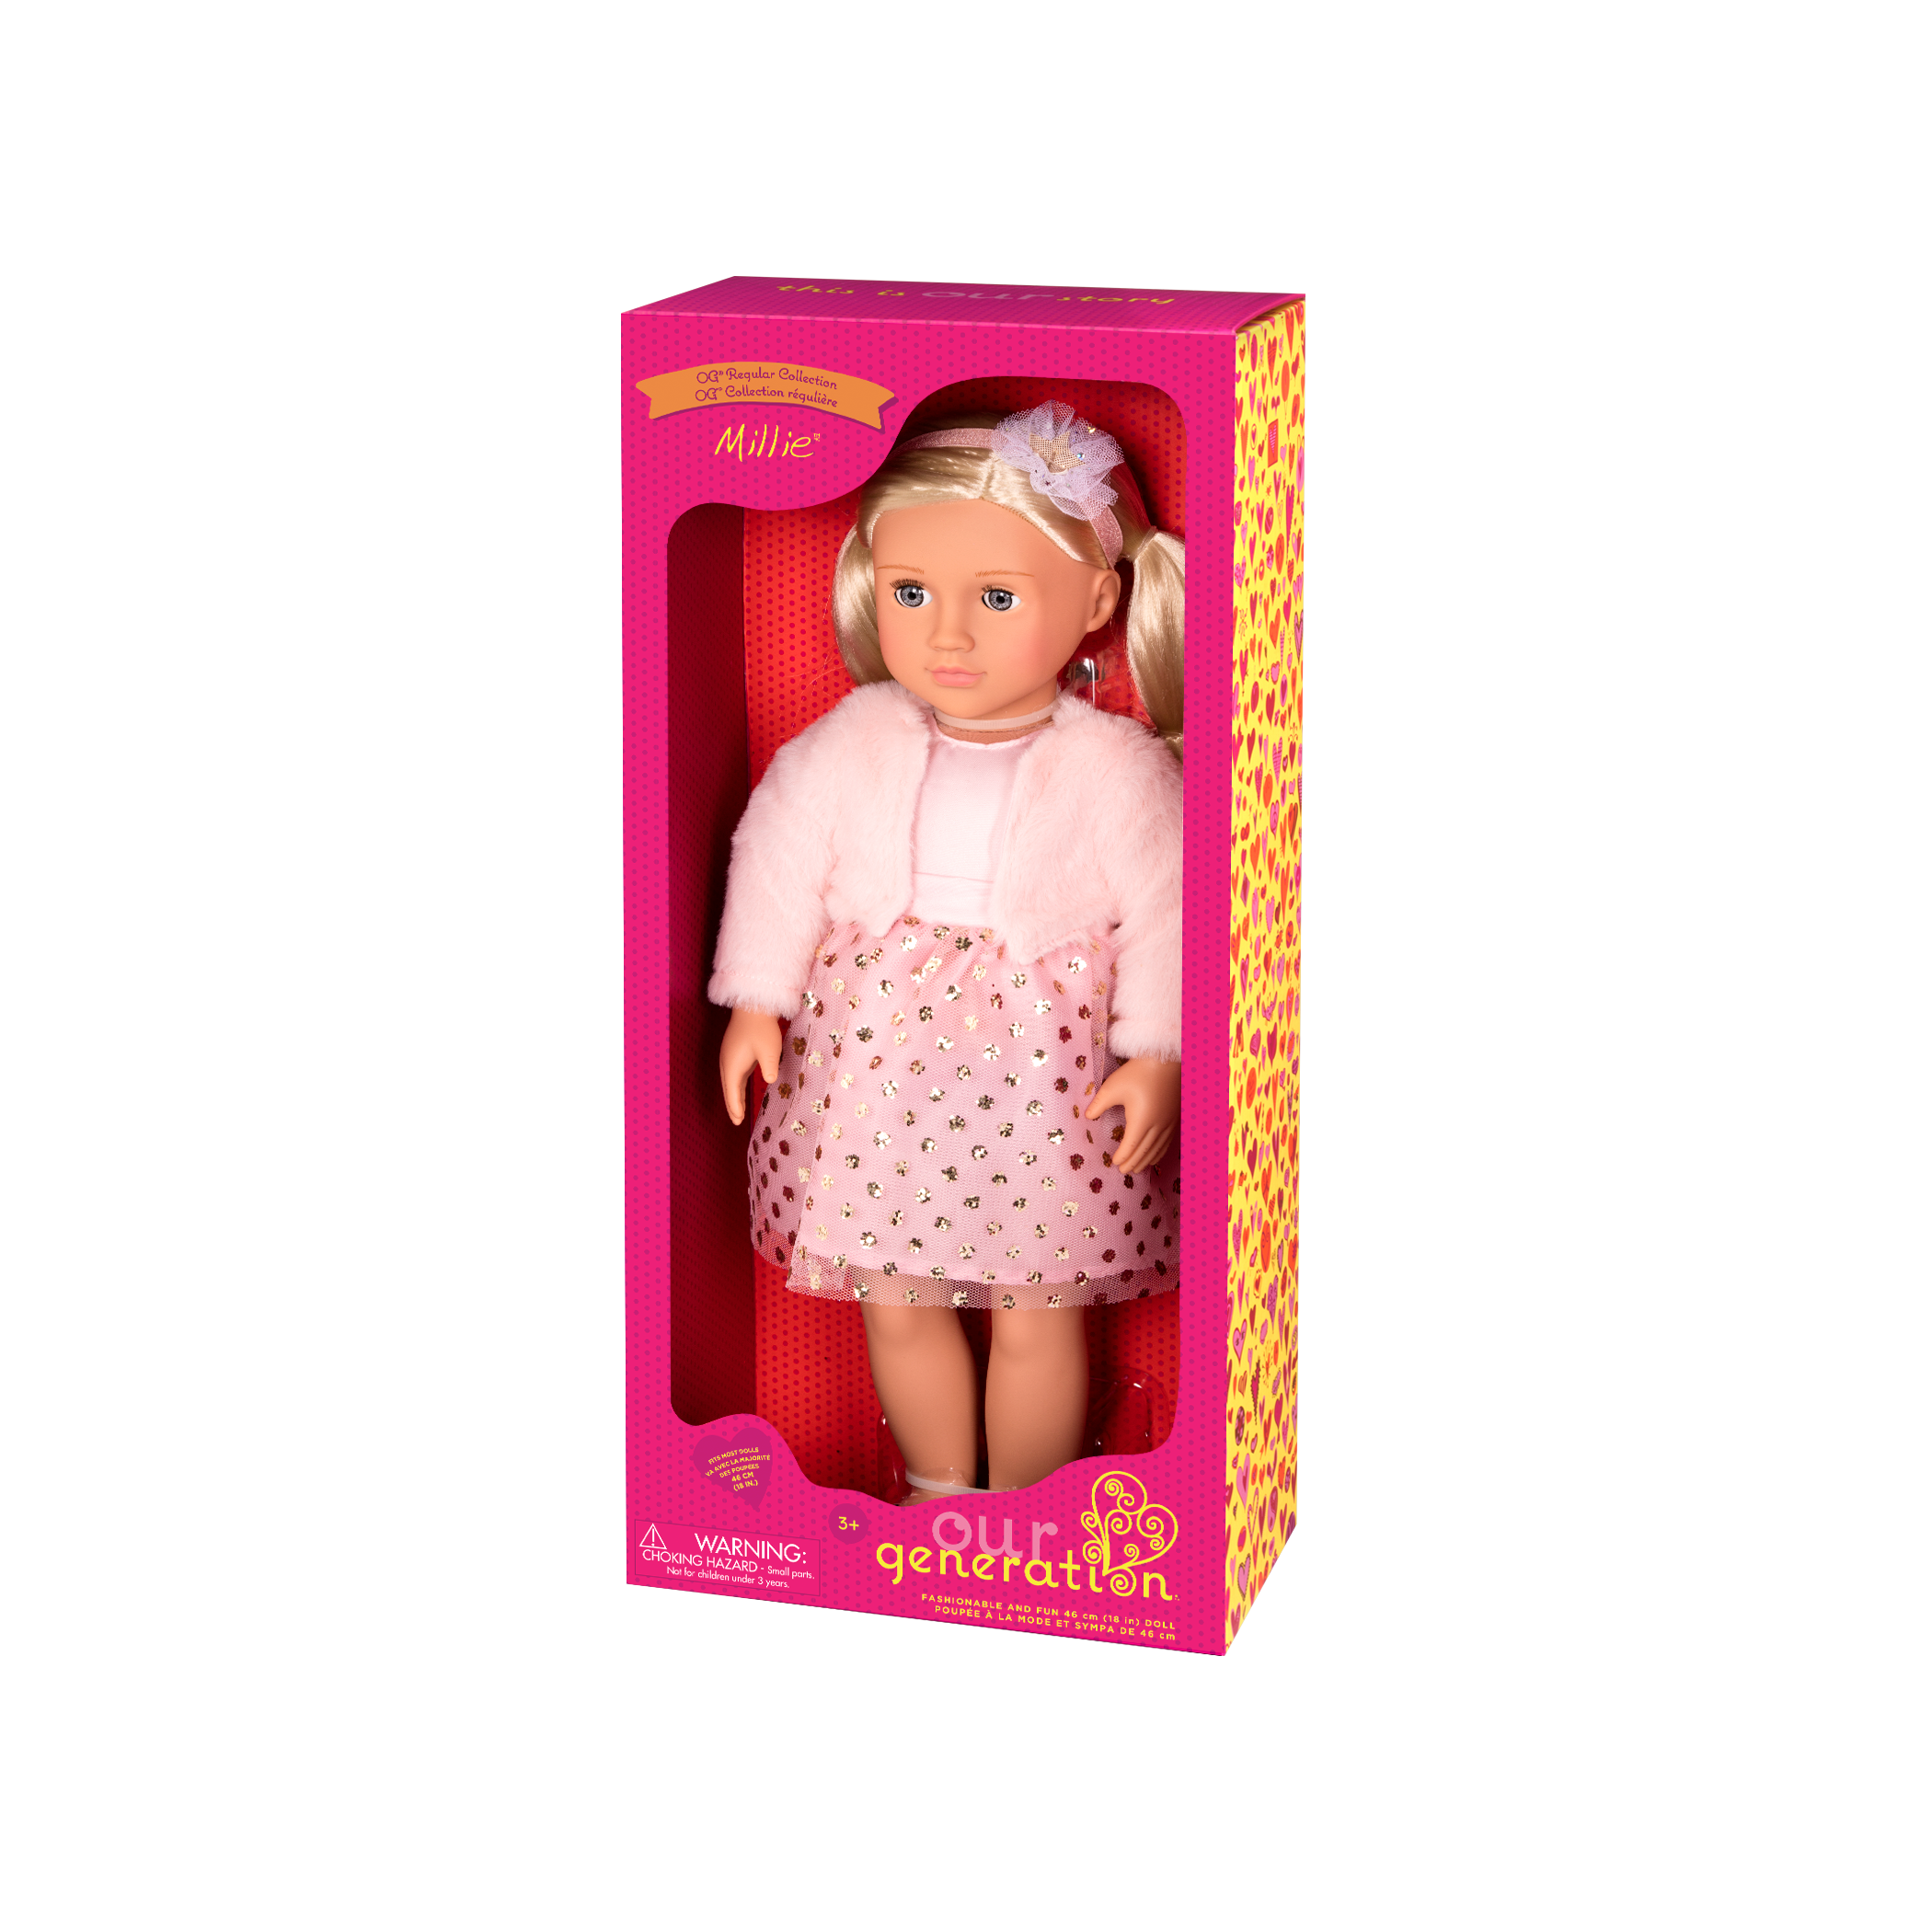 Millie Regular 18-inch Doll in packaging